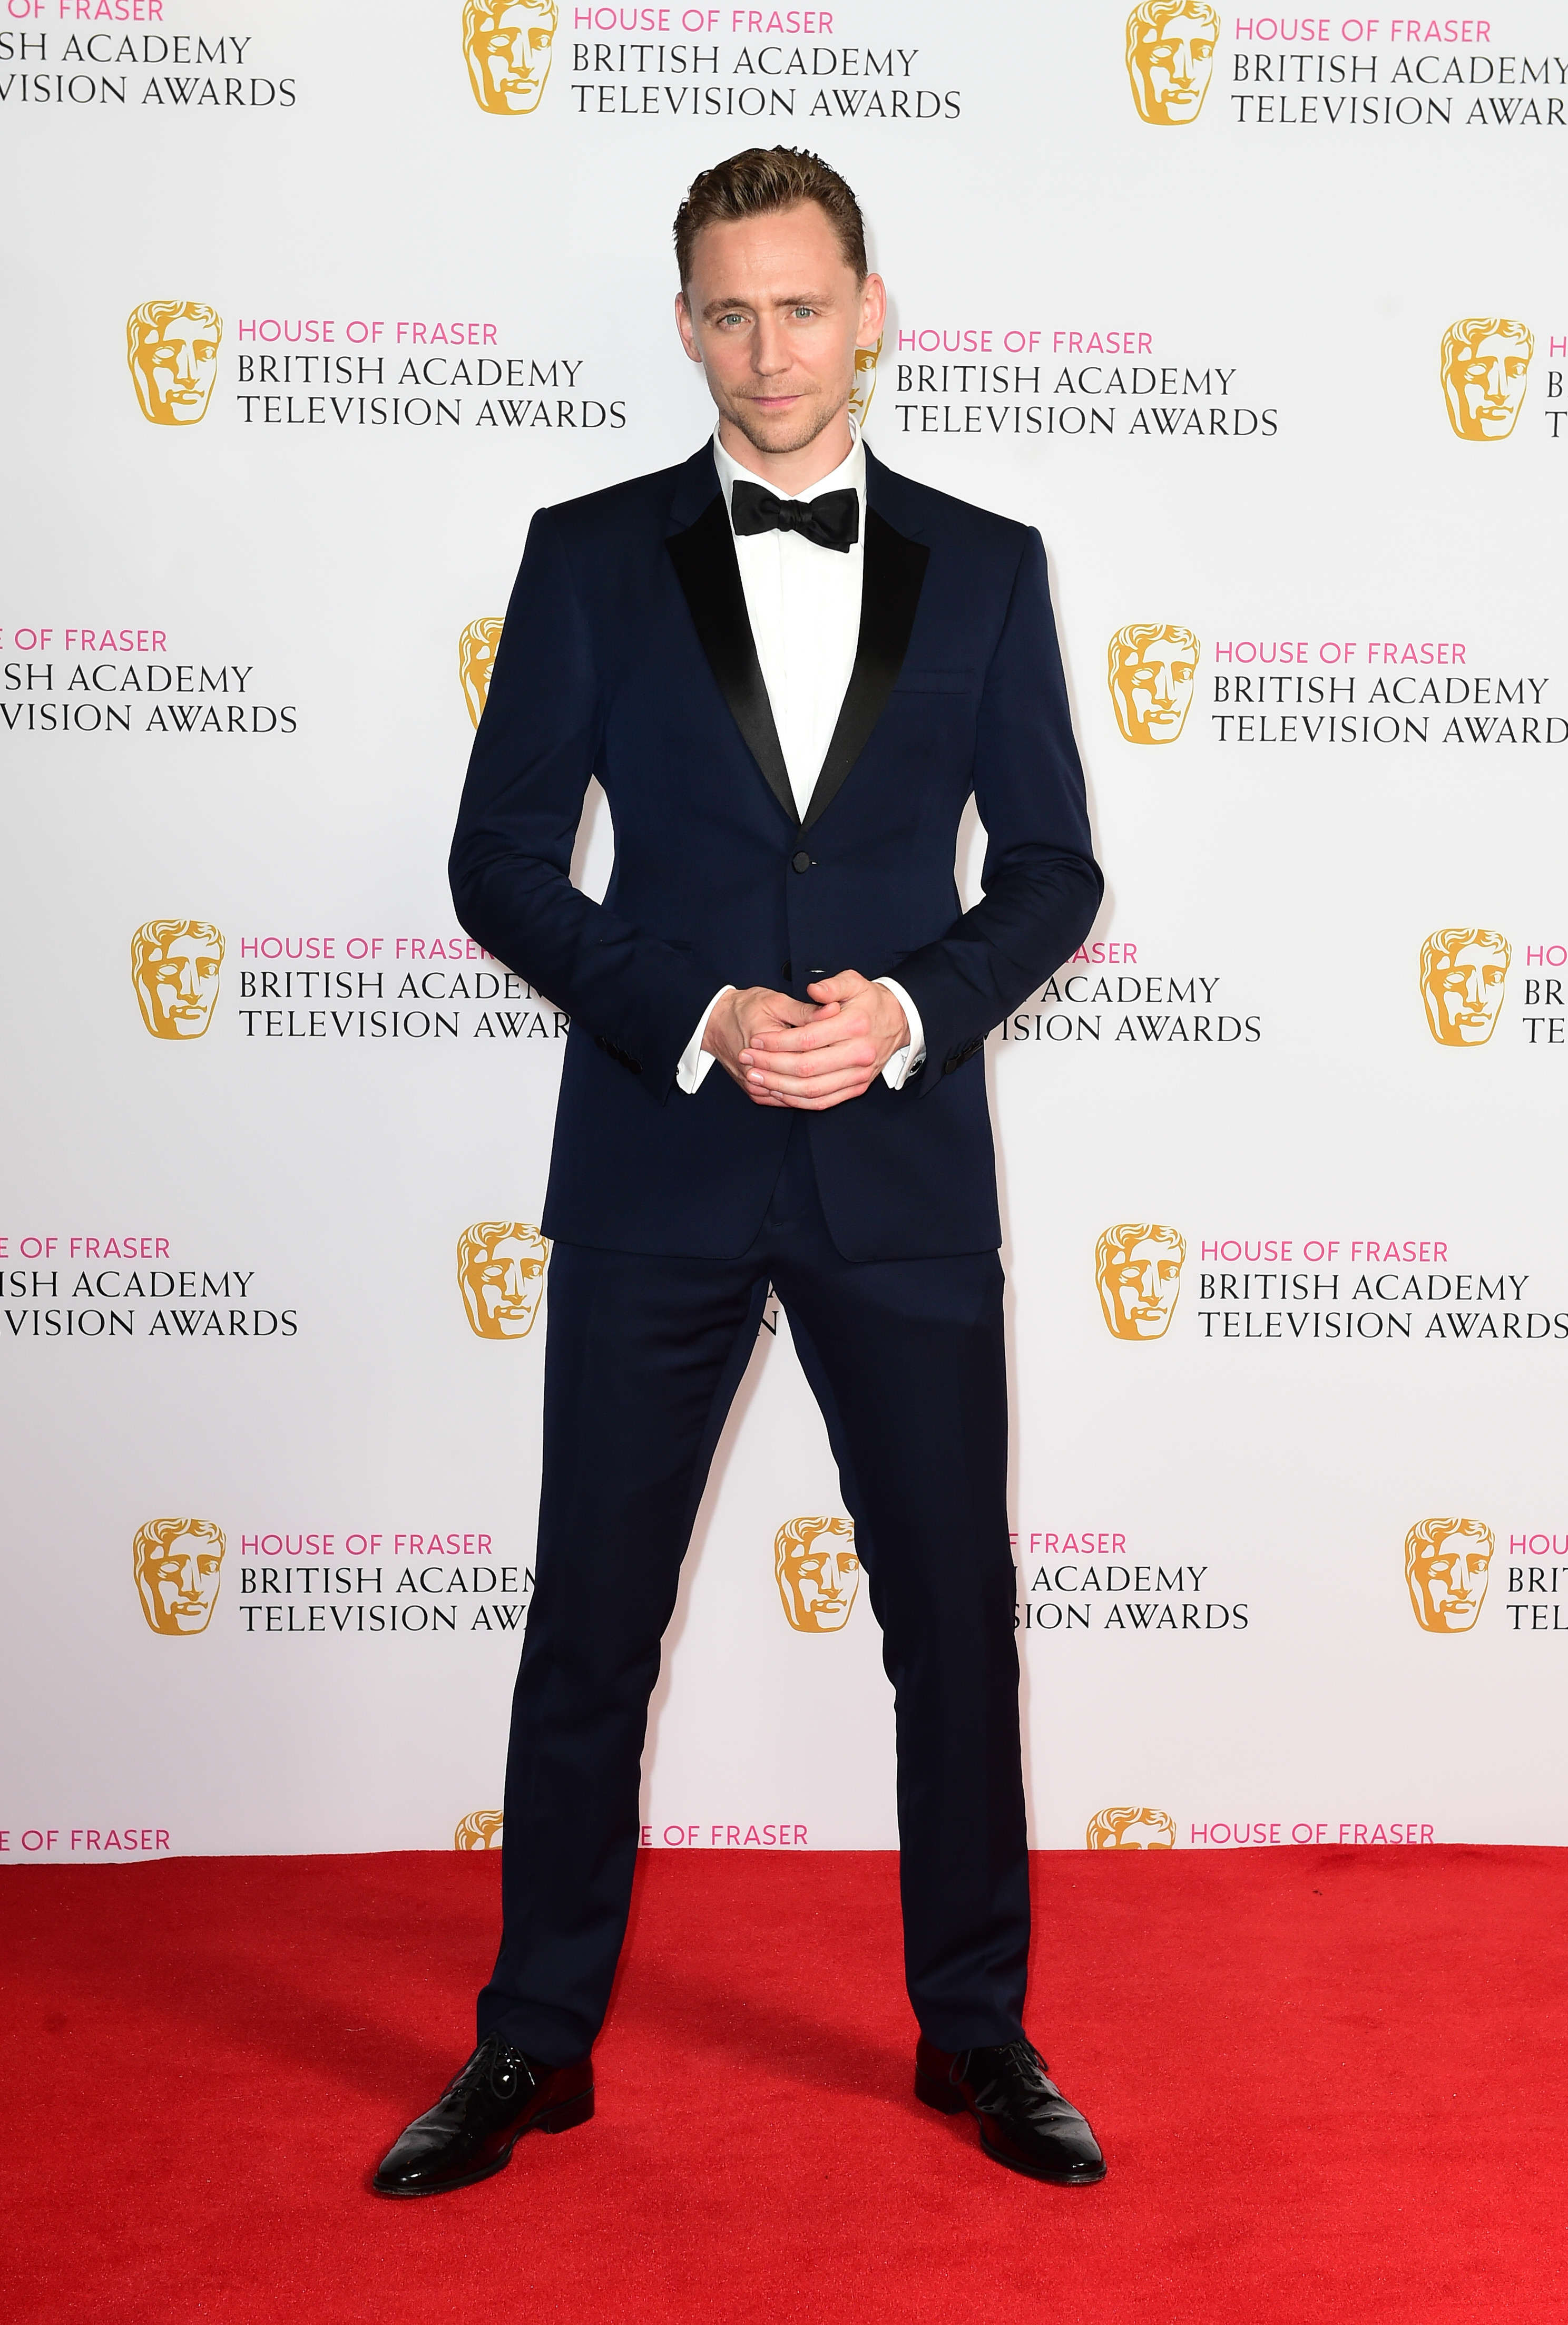 House of Fraser BAFTA TV Awards 2016 - Press Room - London